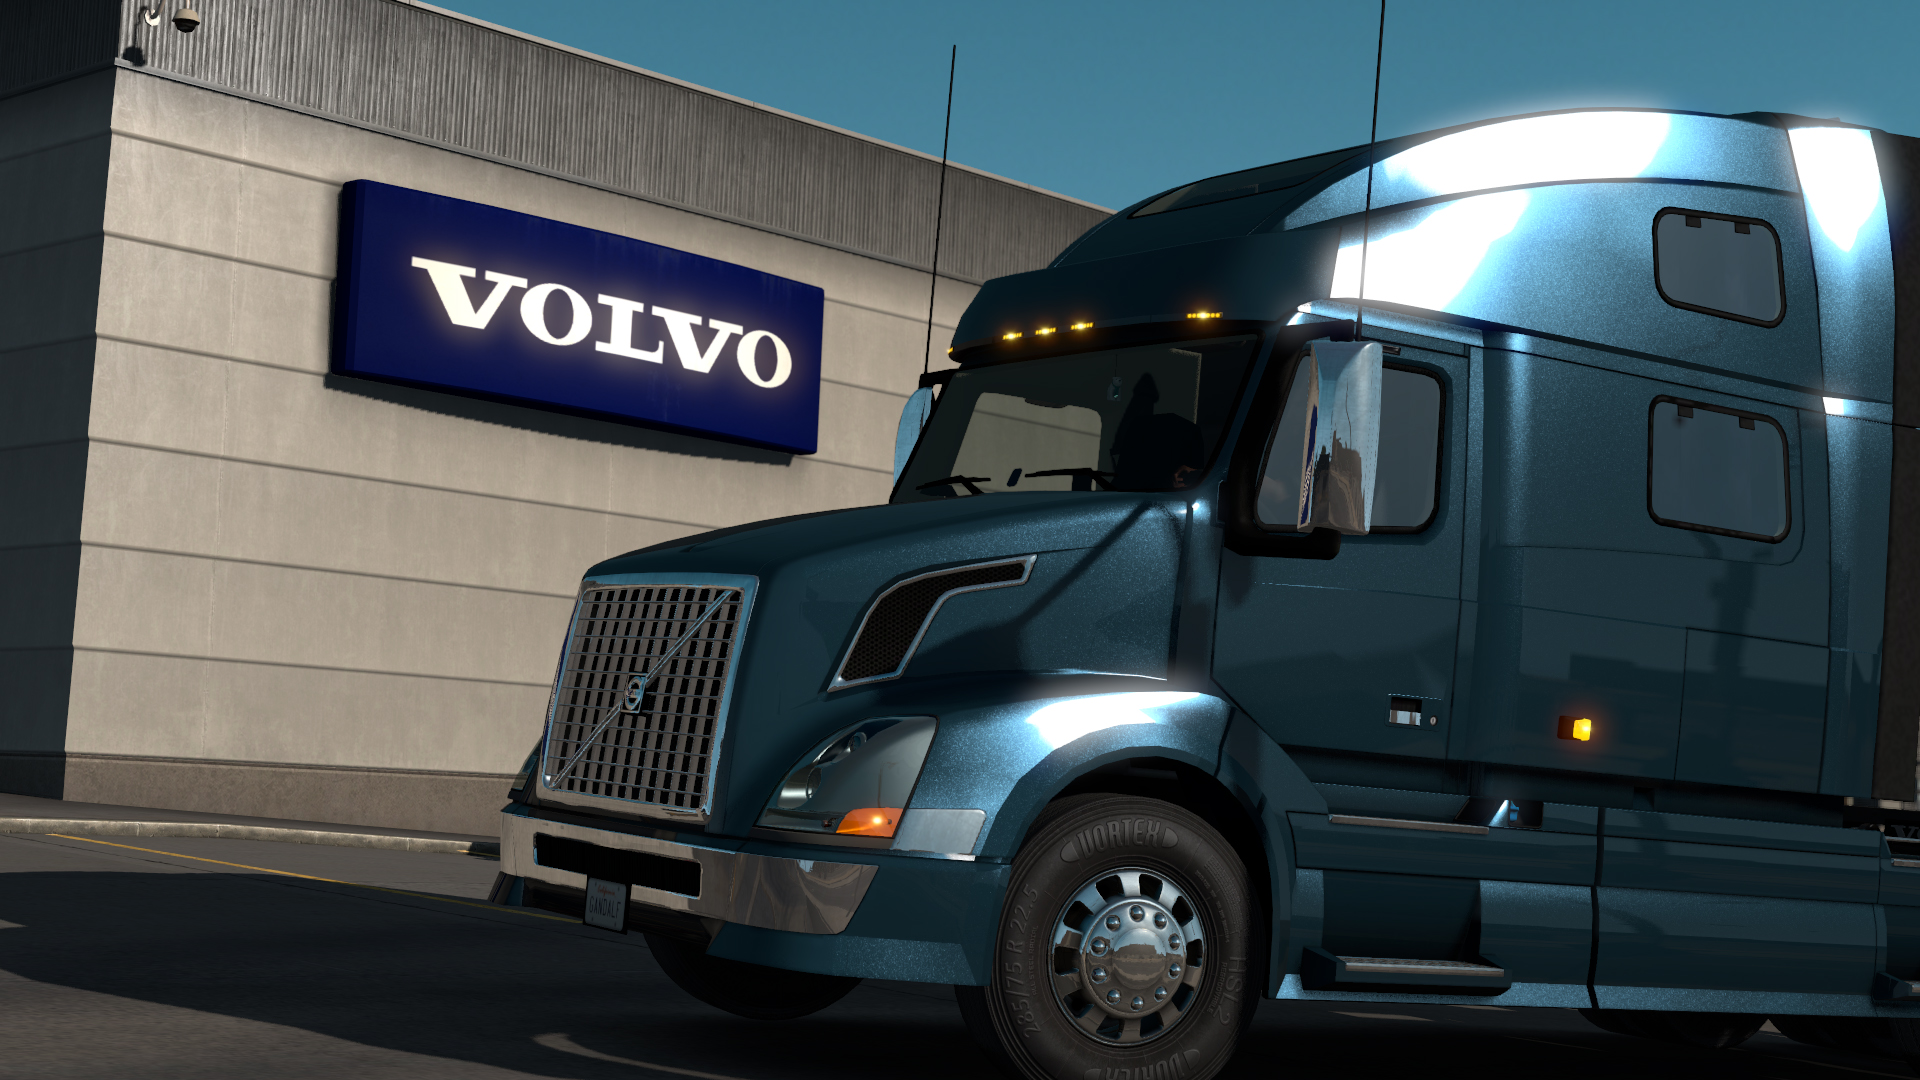 Volvo Dealership Los Angeles >> Steam Community Guide Truck Dealer Locations